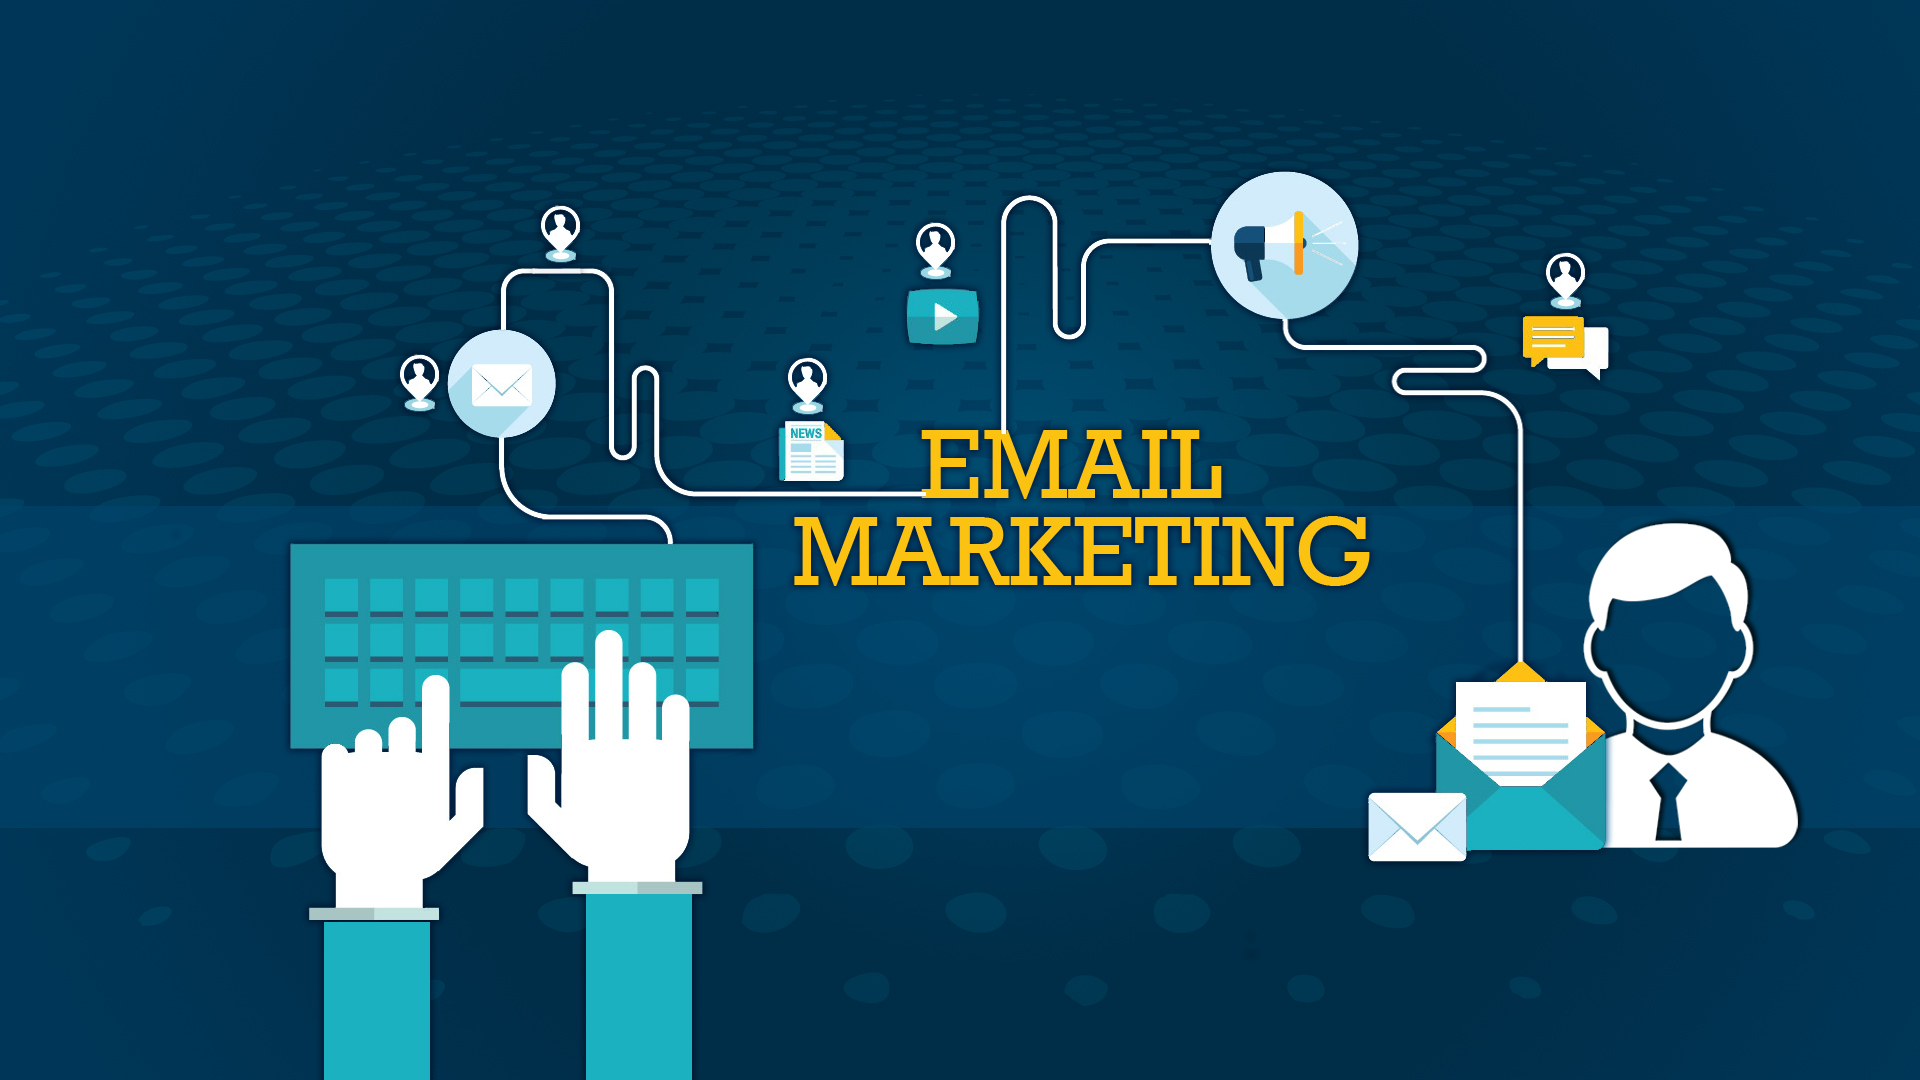 email-marketing-campaign.jpg